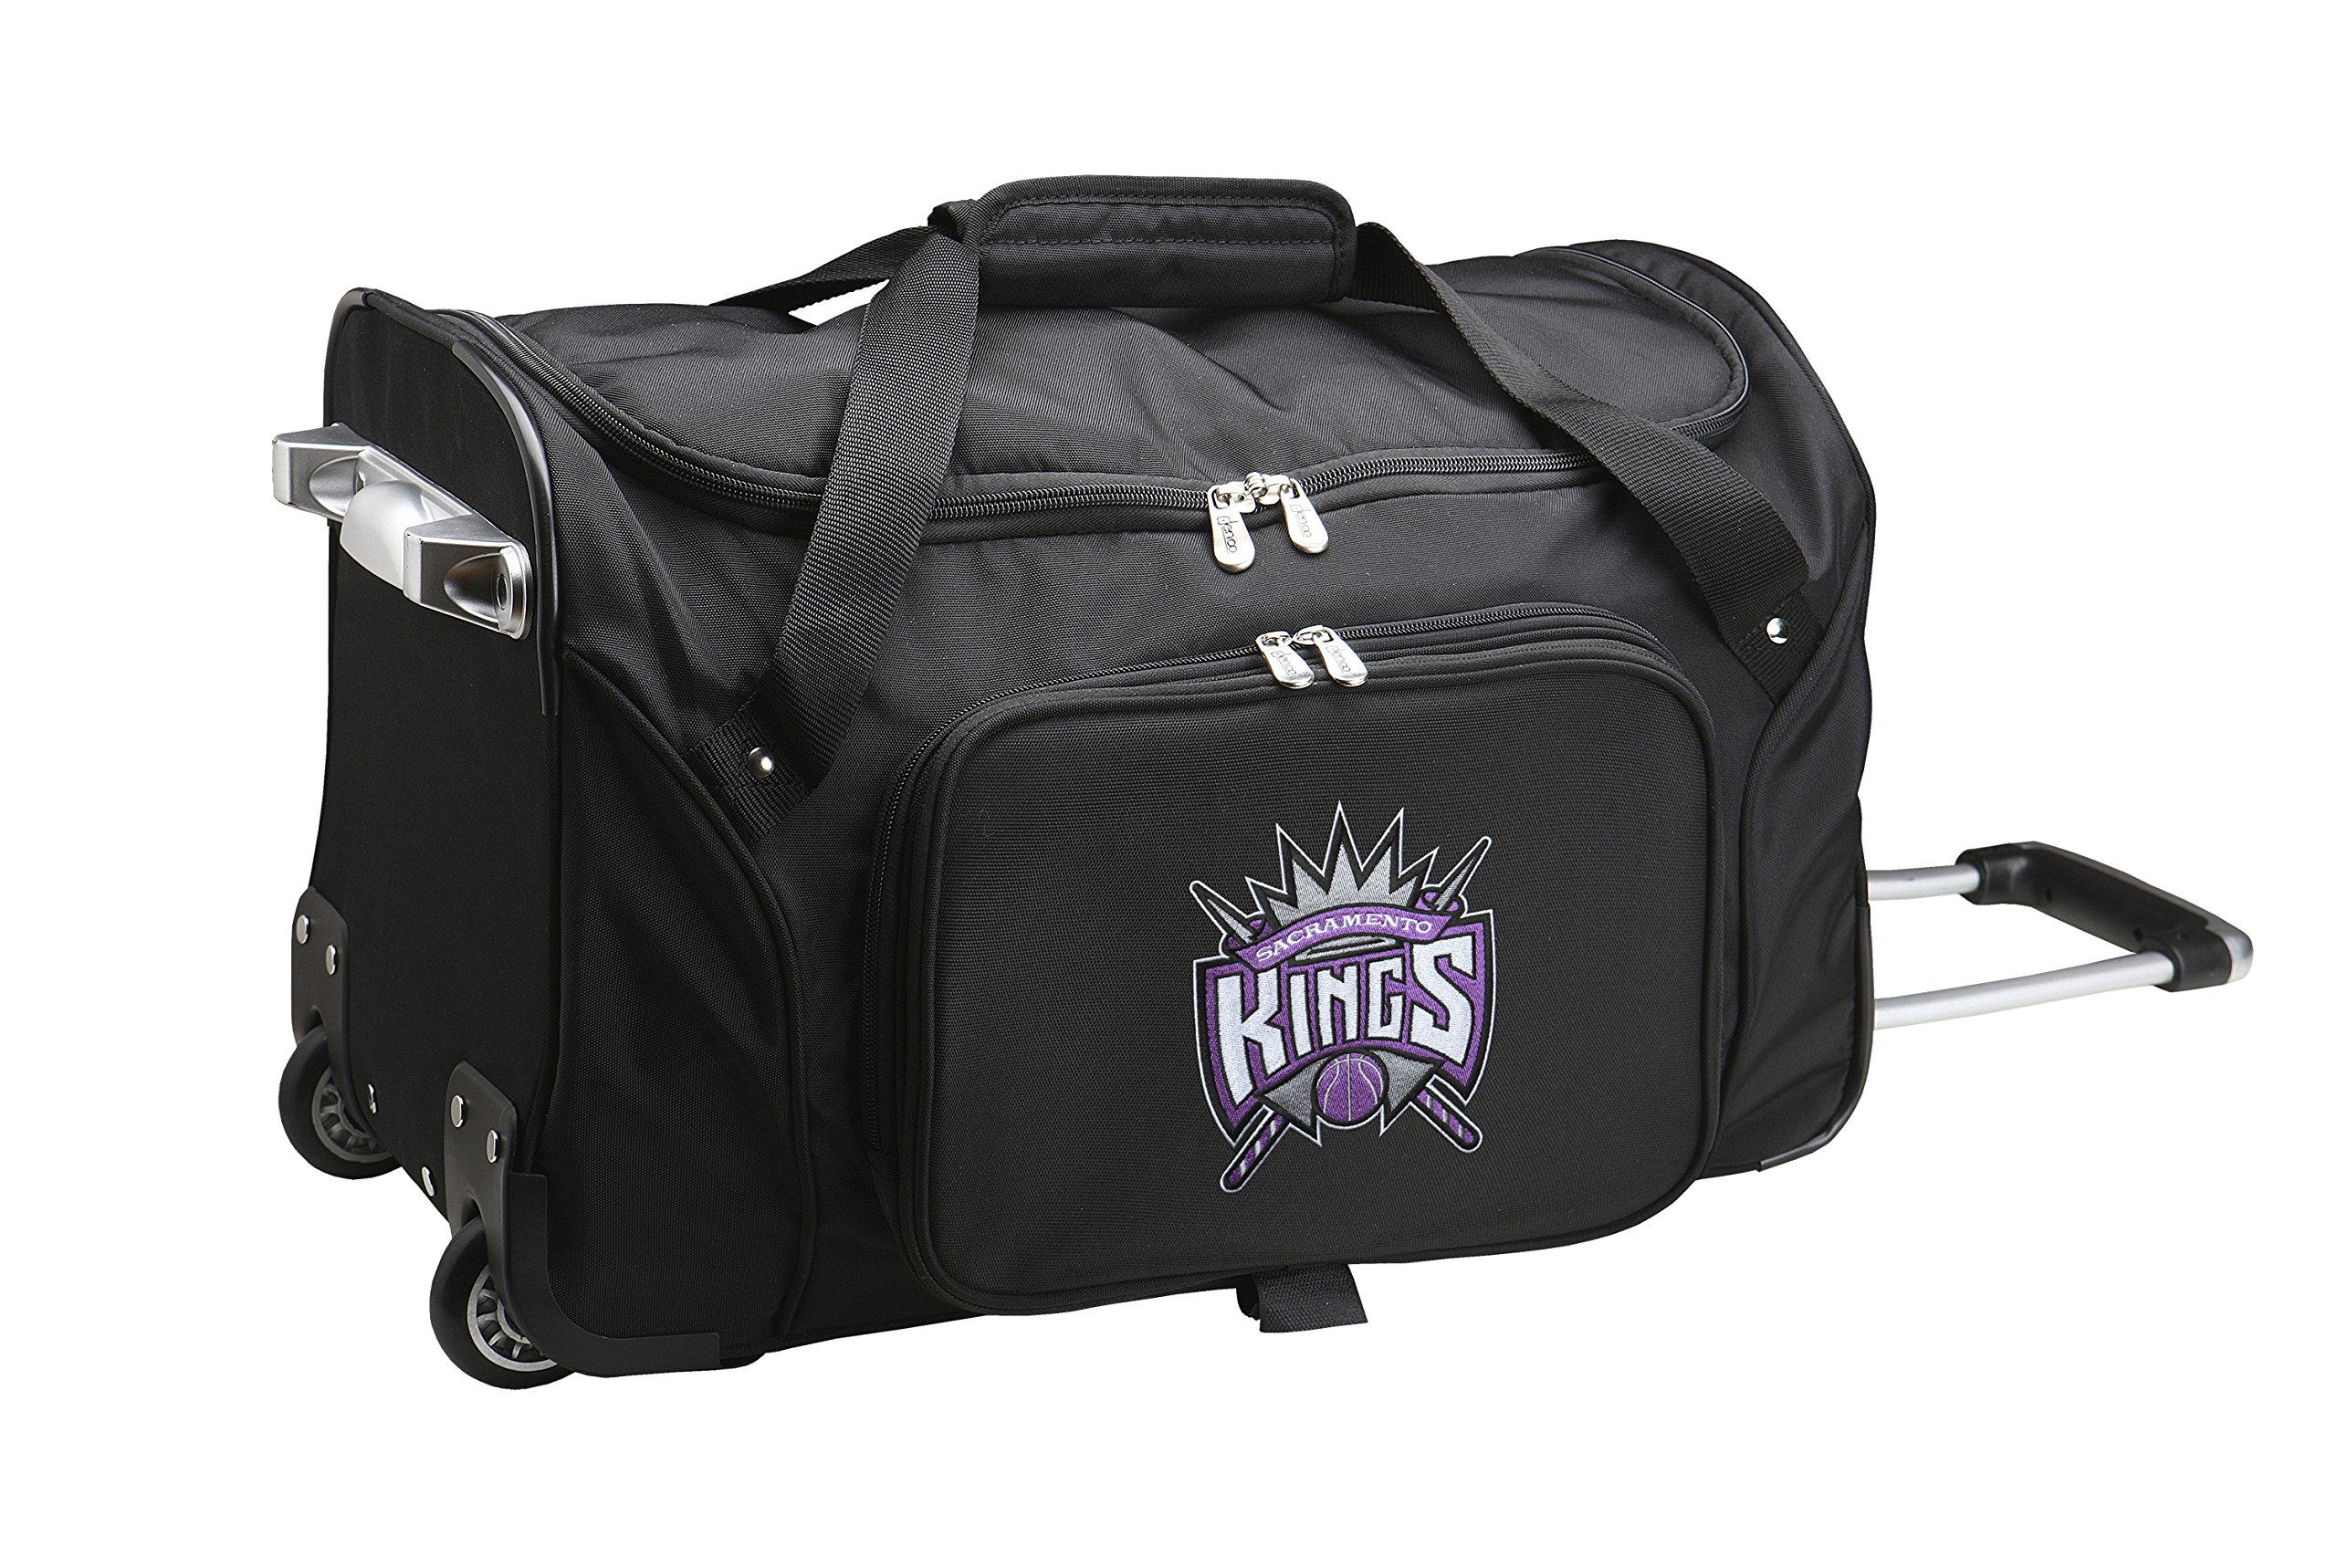 NBA Sacramento Kings Wheeled Duffle Bag, 22 x 12 x 5.5'', Black